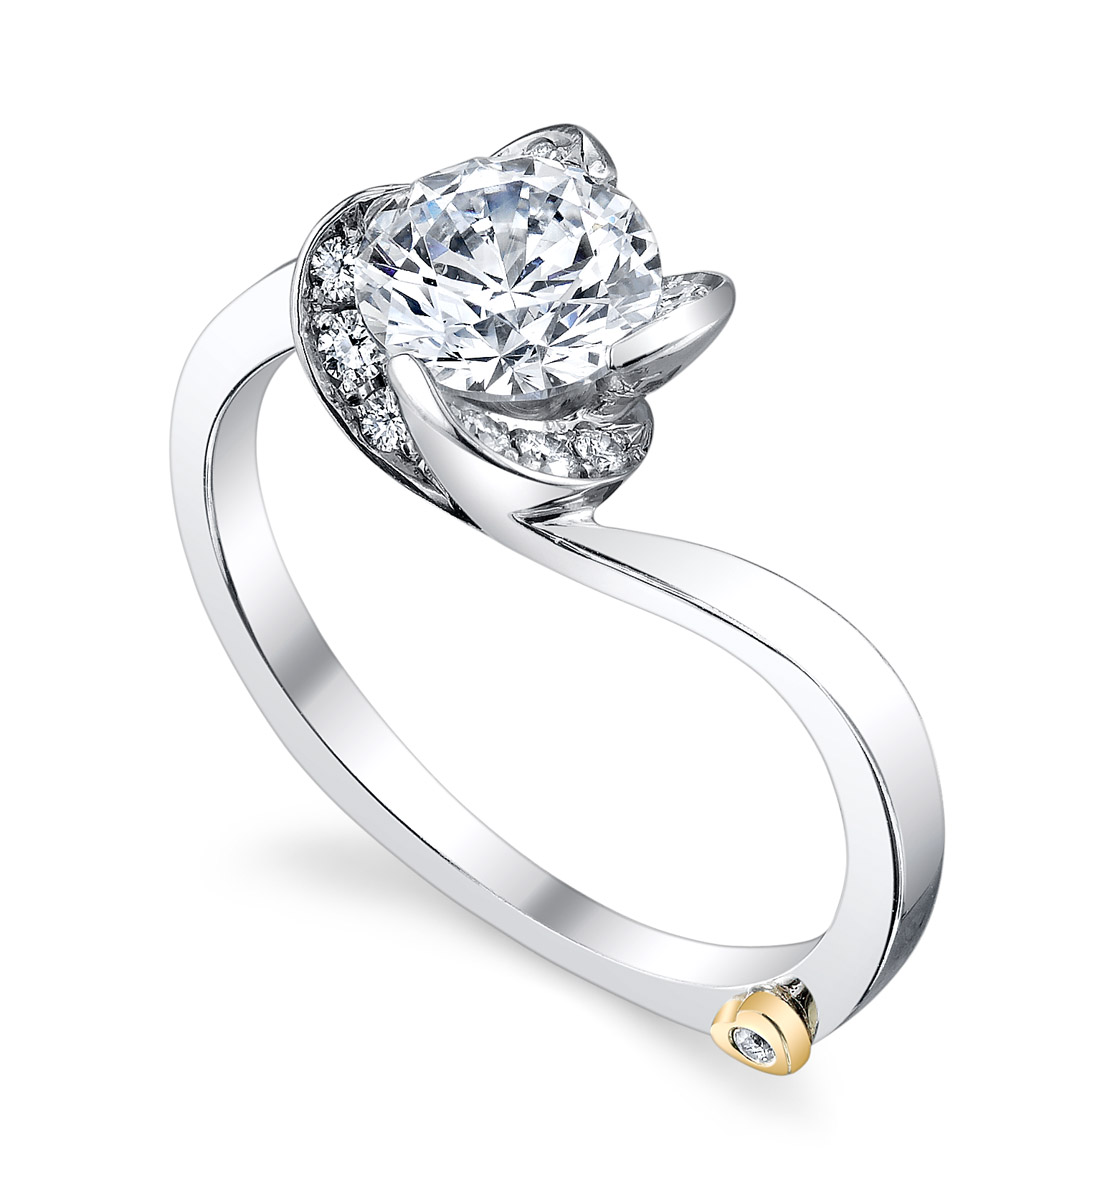 Mark Schneider : Rose Engagement Ring - Tilt